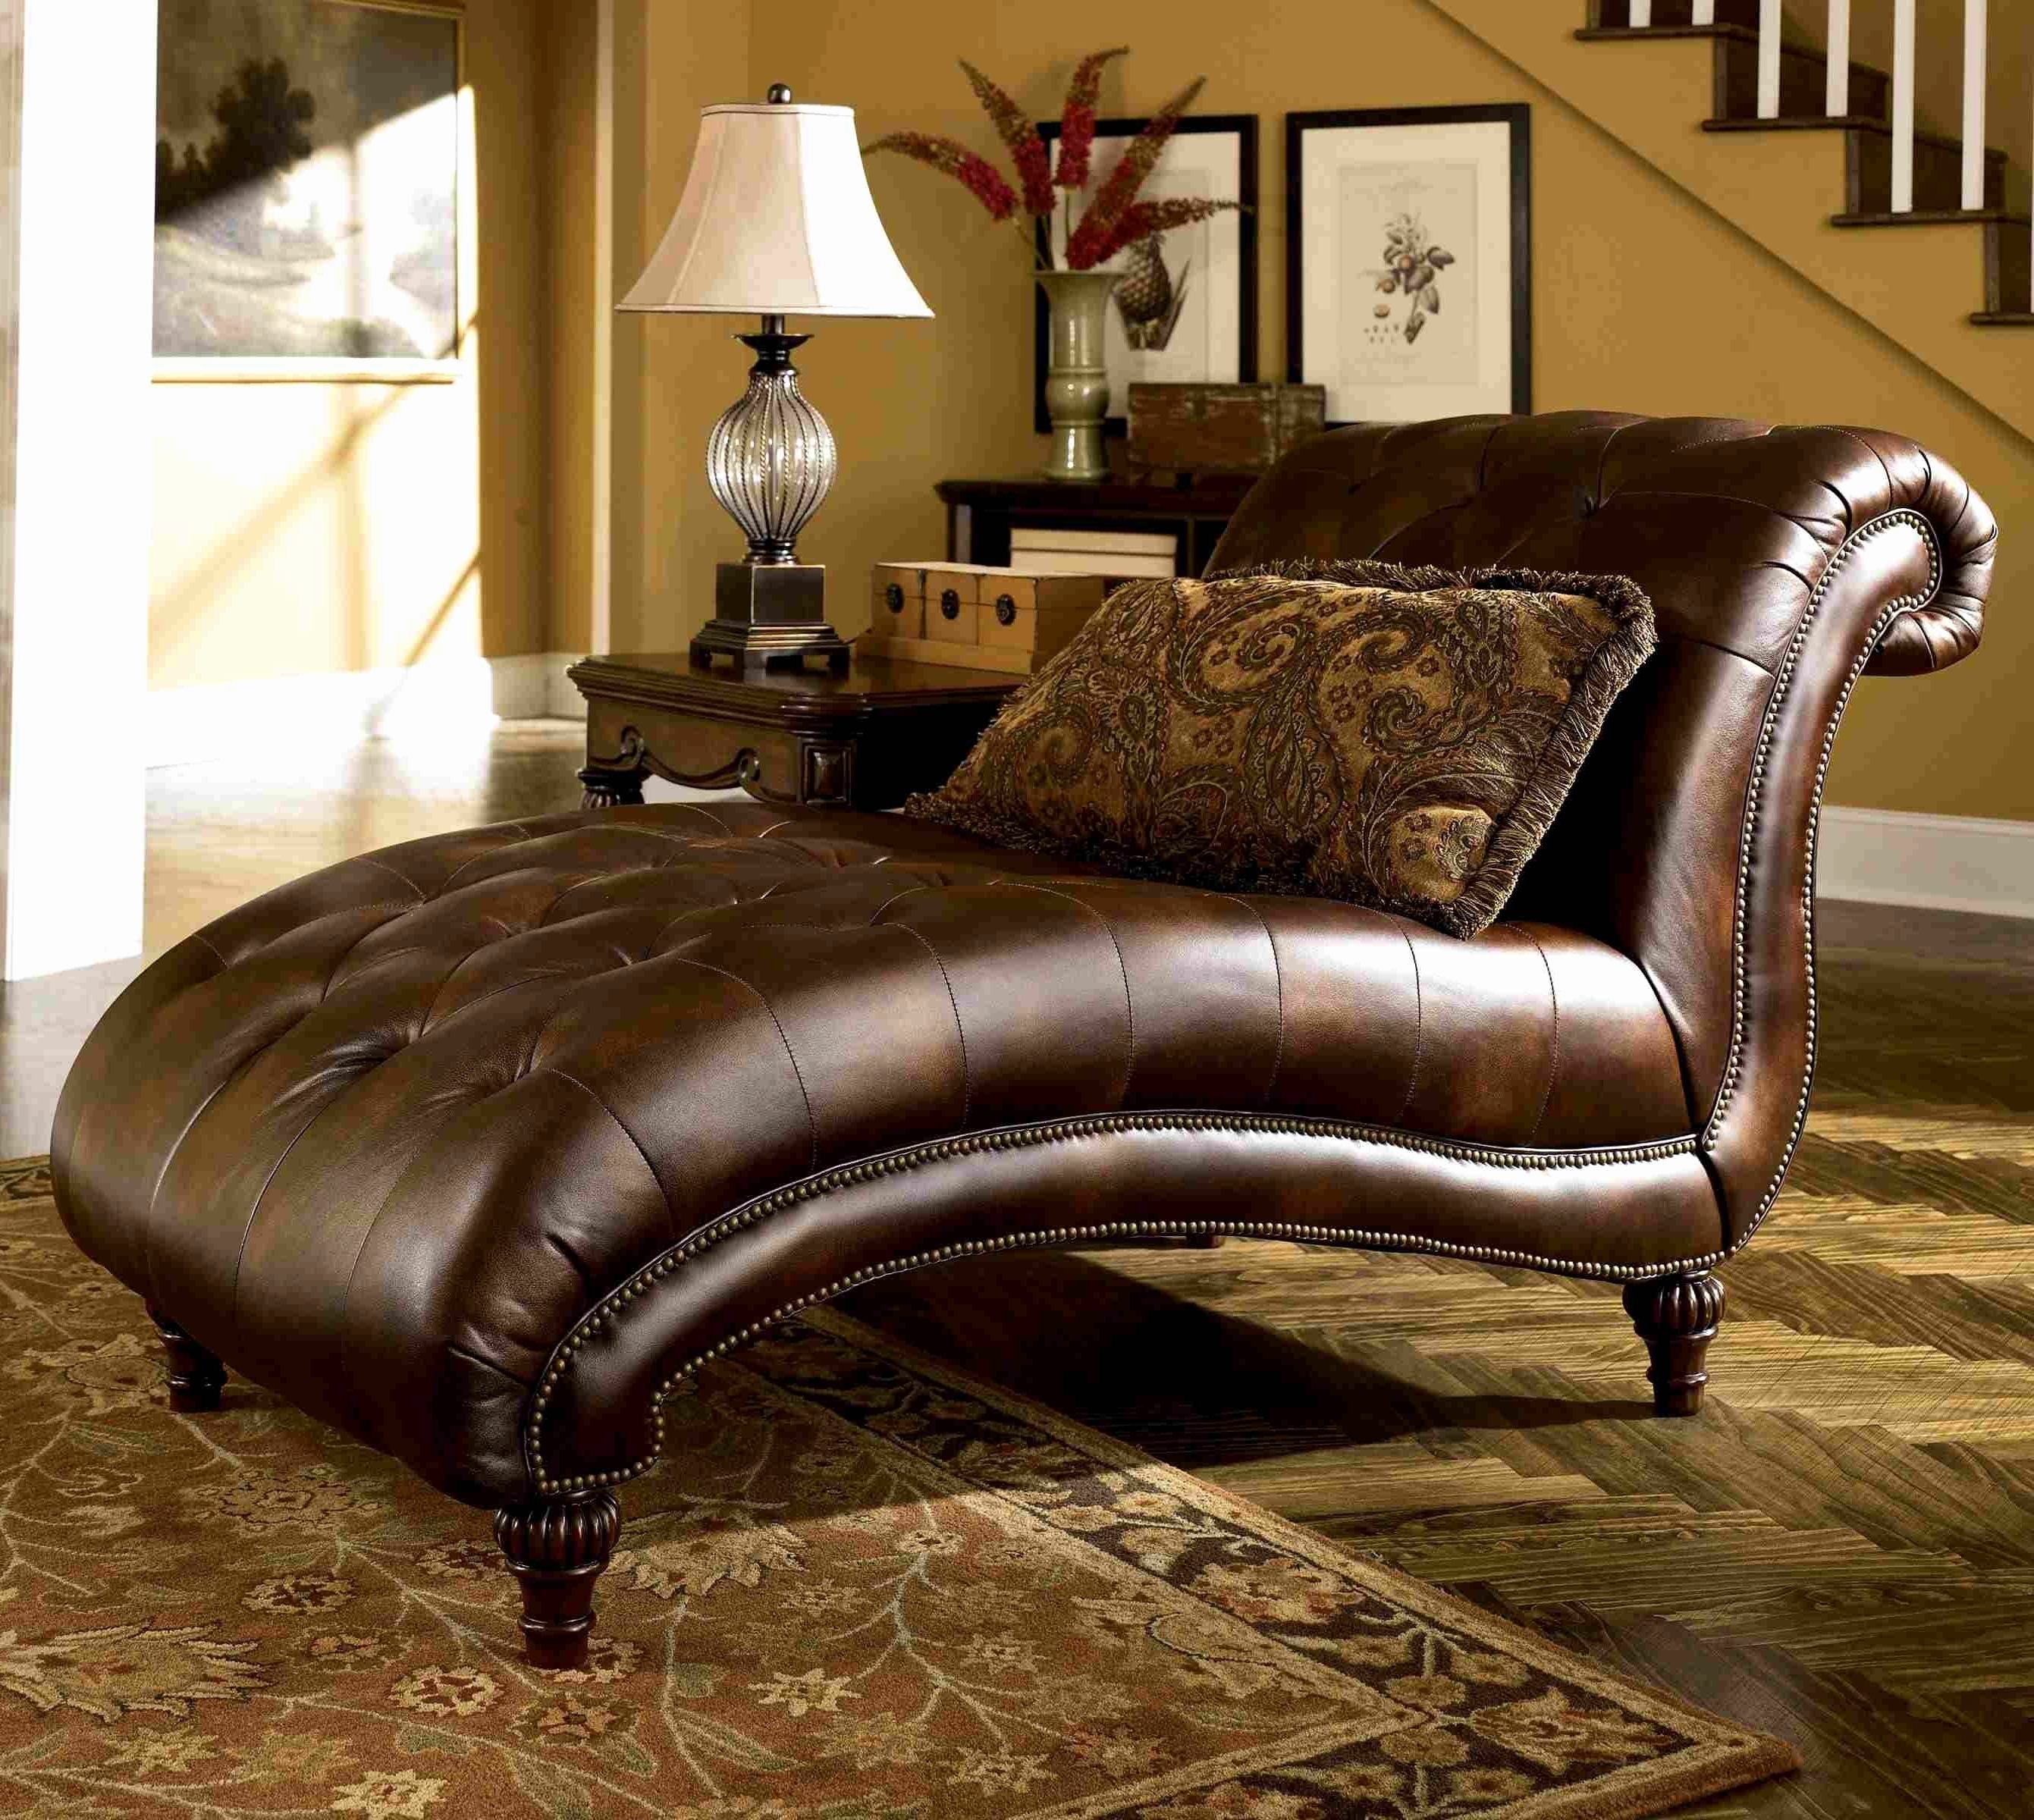 Home Designs : Living Room Chaise Lounge Chairs Overstuffed Living Throughout Newest Brown Leather Chaise Lounges (View 4 of 15)